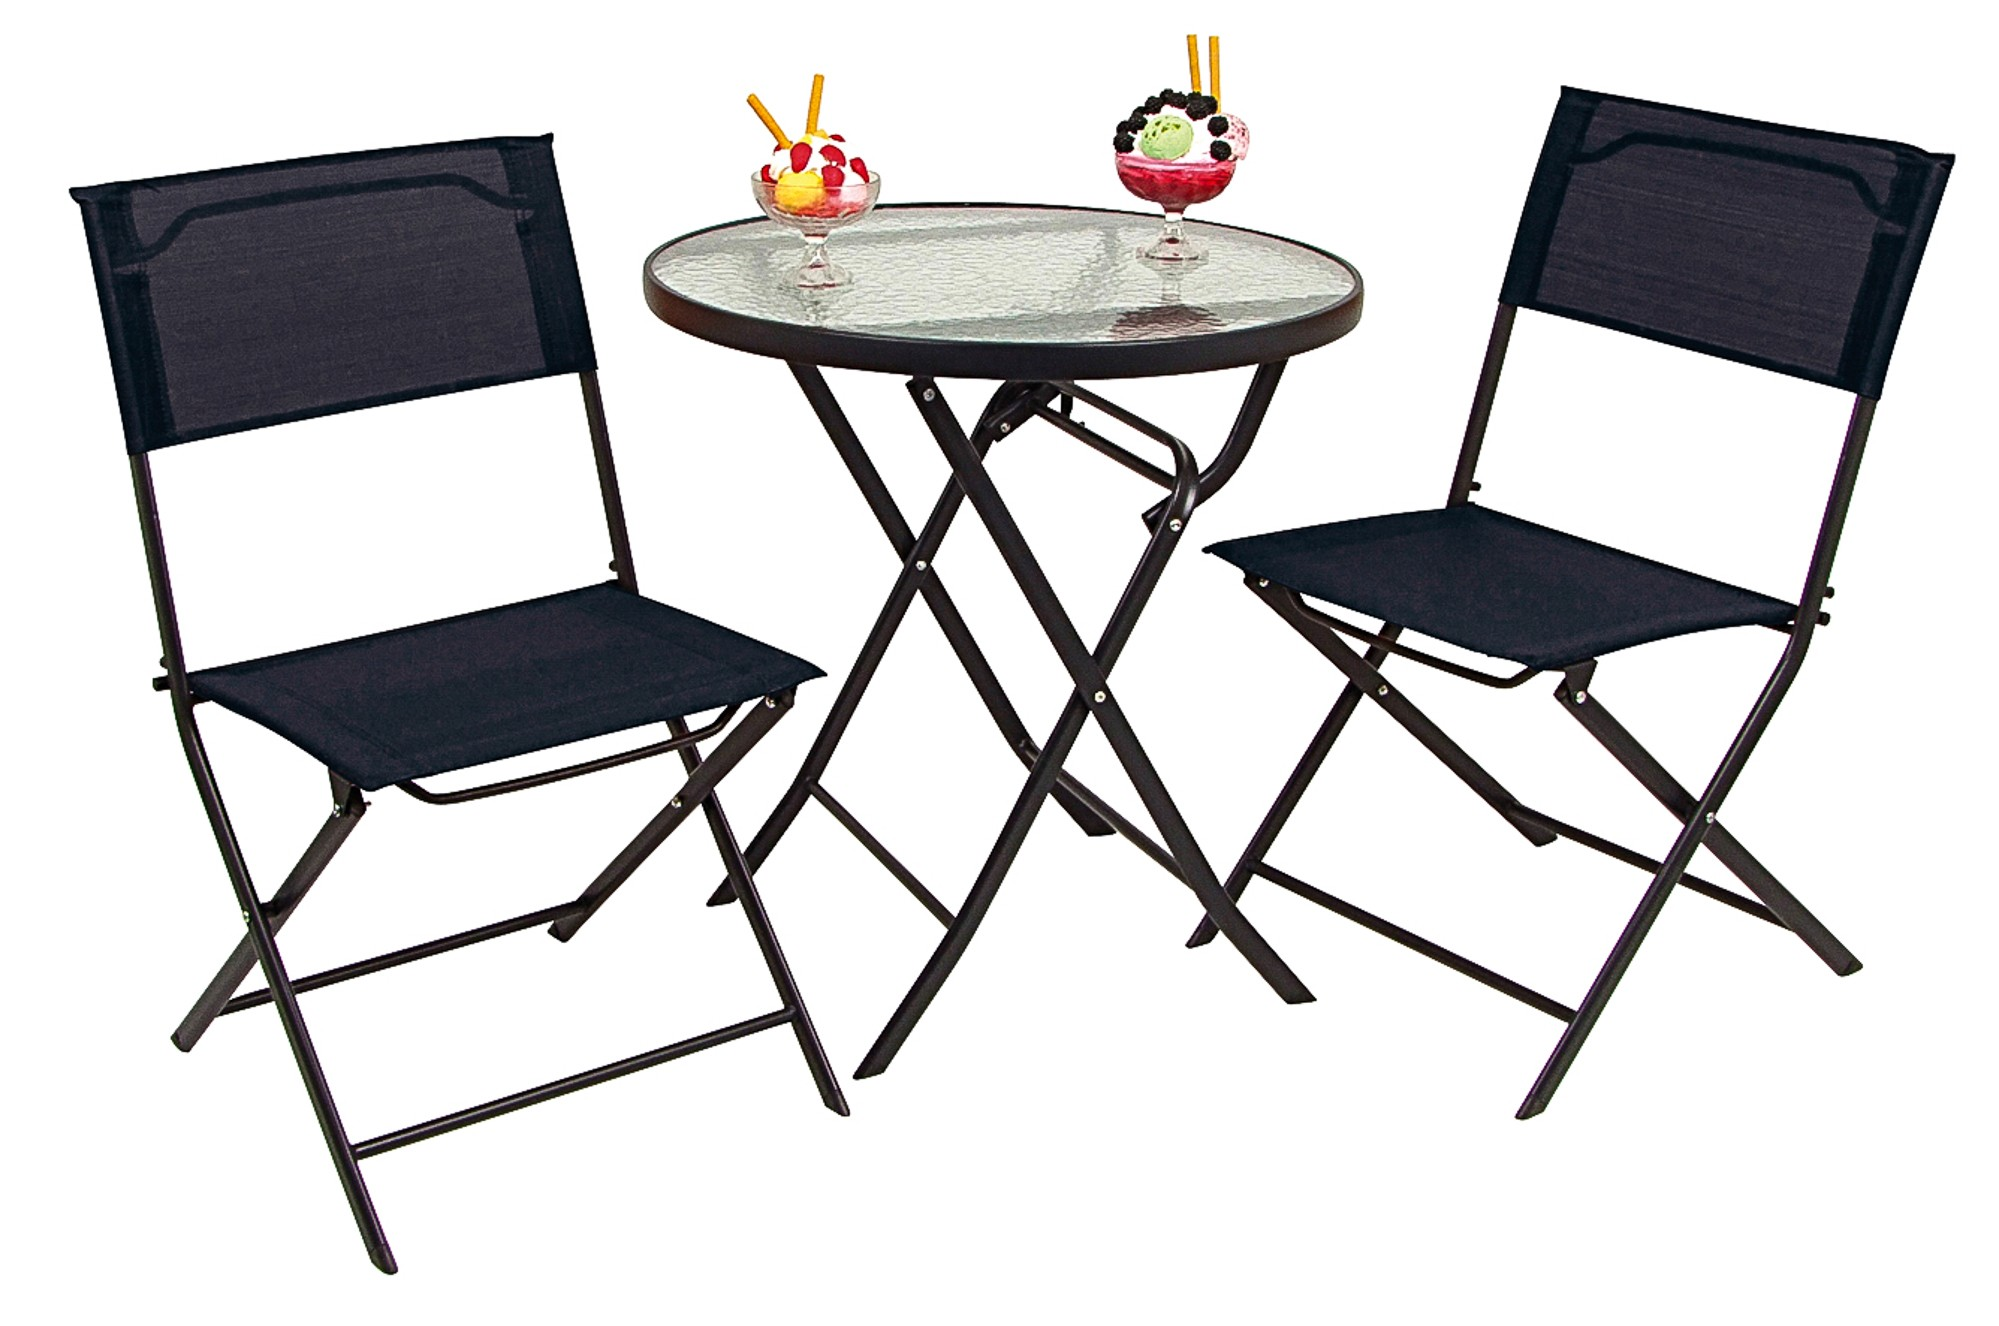 bistro set 3tlg balkonset bistroset sitzgruppe tischgruppe balkon tisch st hle ebay. Black Bedroom Furniture Sets. Home Design Ideas